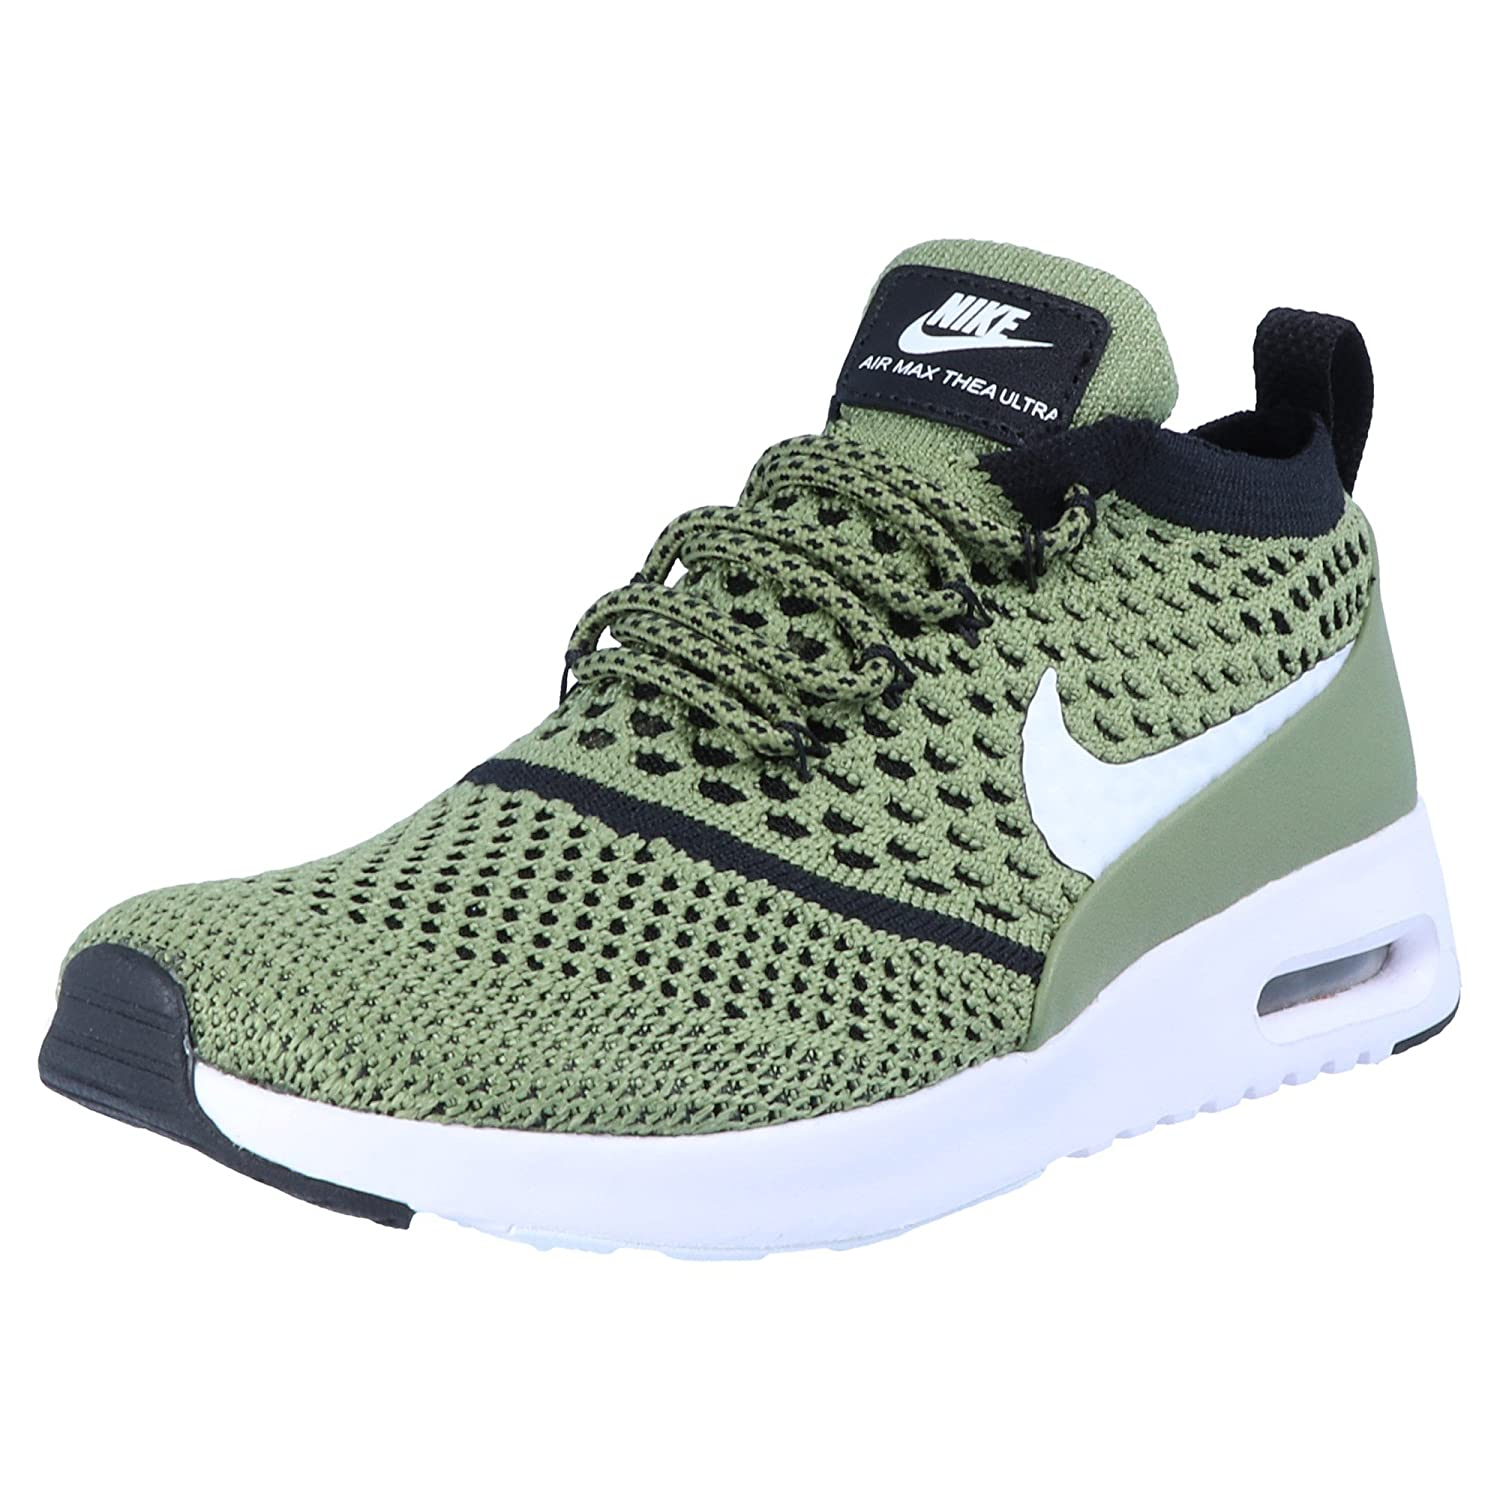 Nike - Air Max Thea Flyknit Palm Green - Sneakers Mujer 38.5 EU|Verde